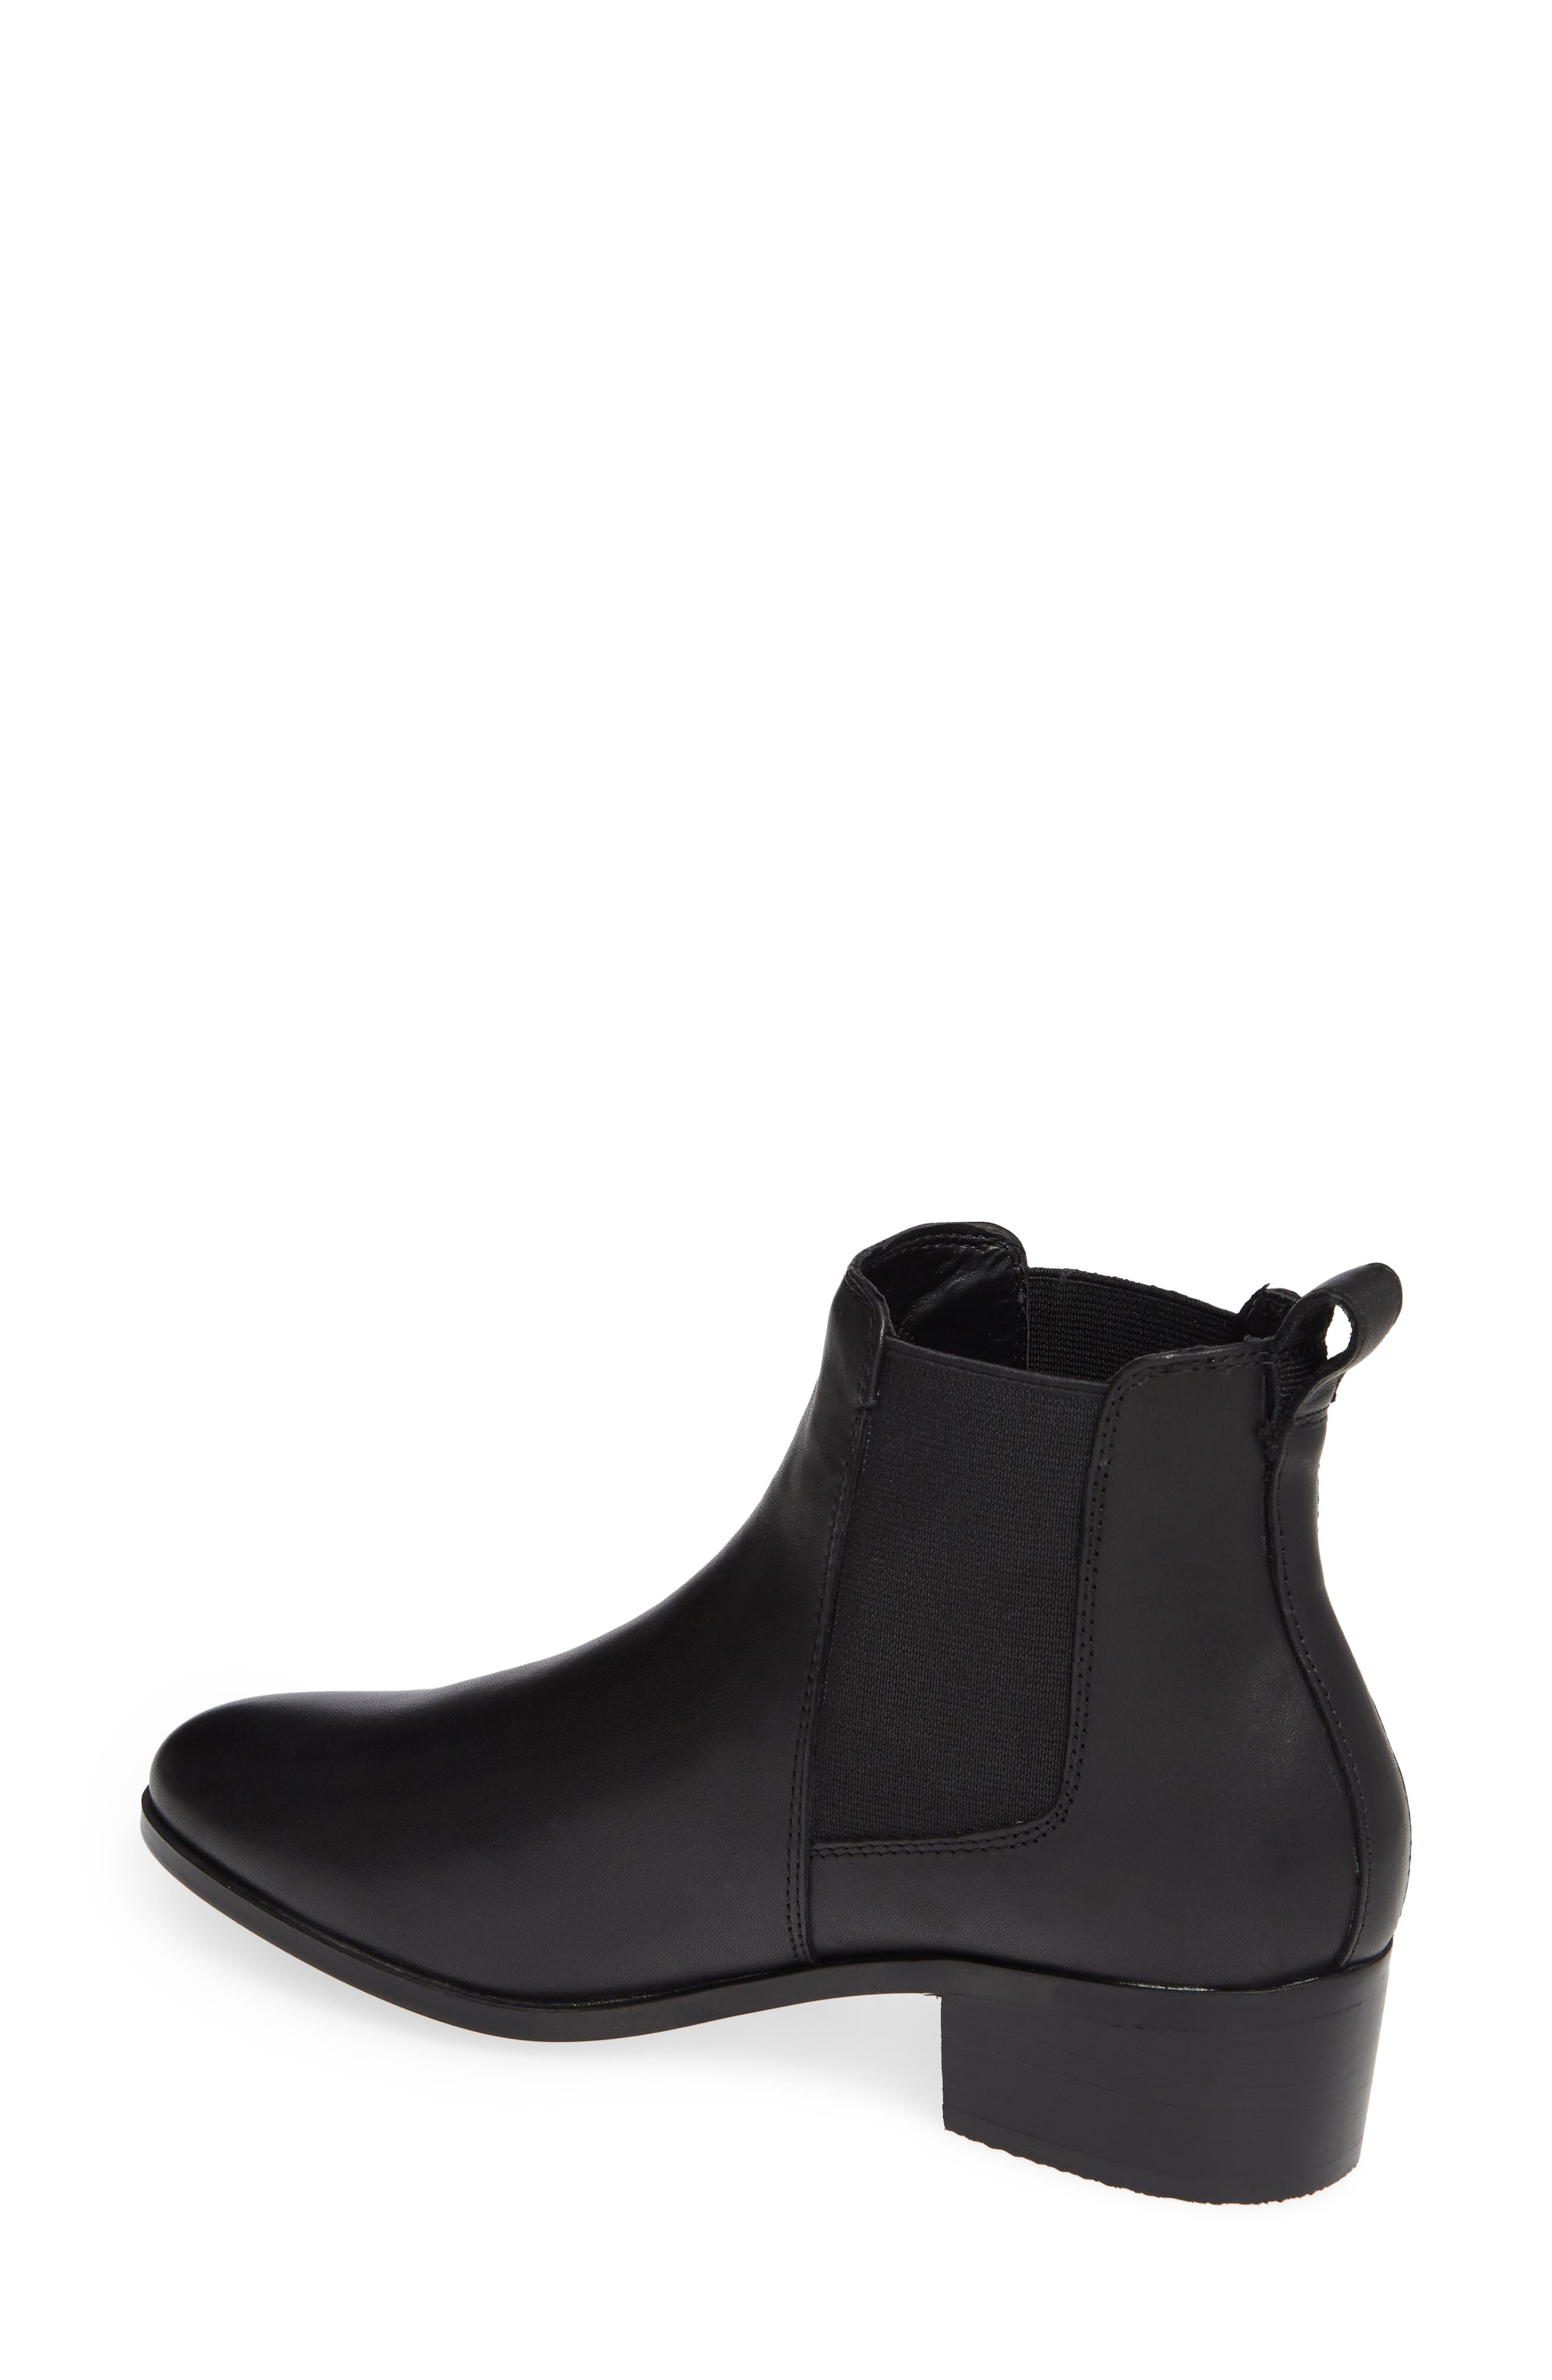 Dover Chelsea Bootie,                             Alternate thumbnail 2, color,                             BLACK LEATHER